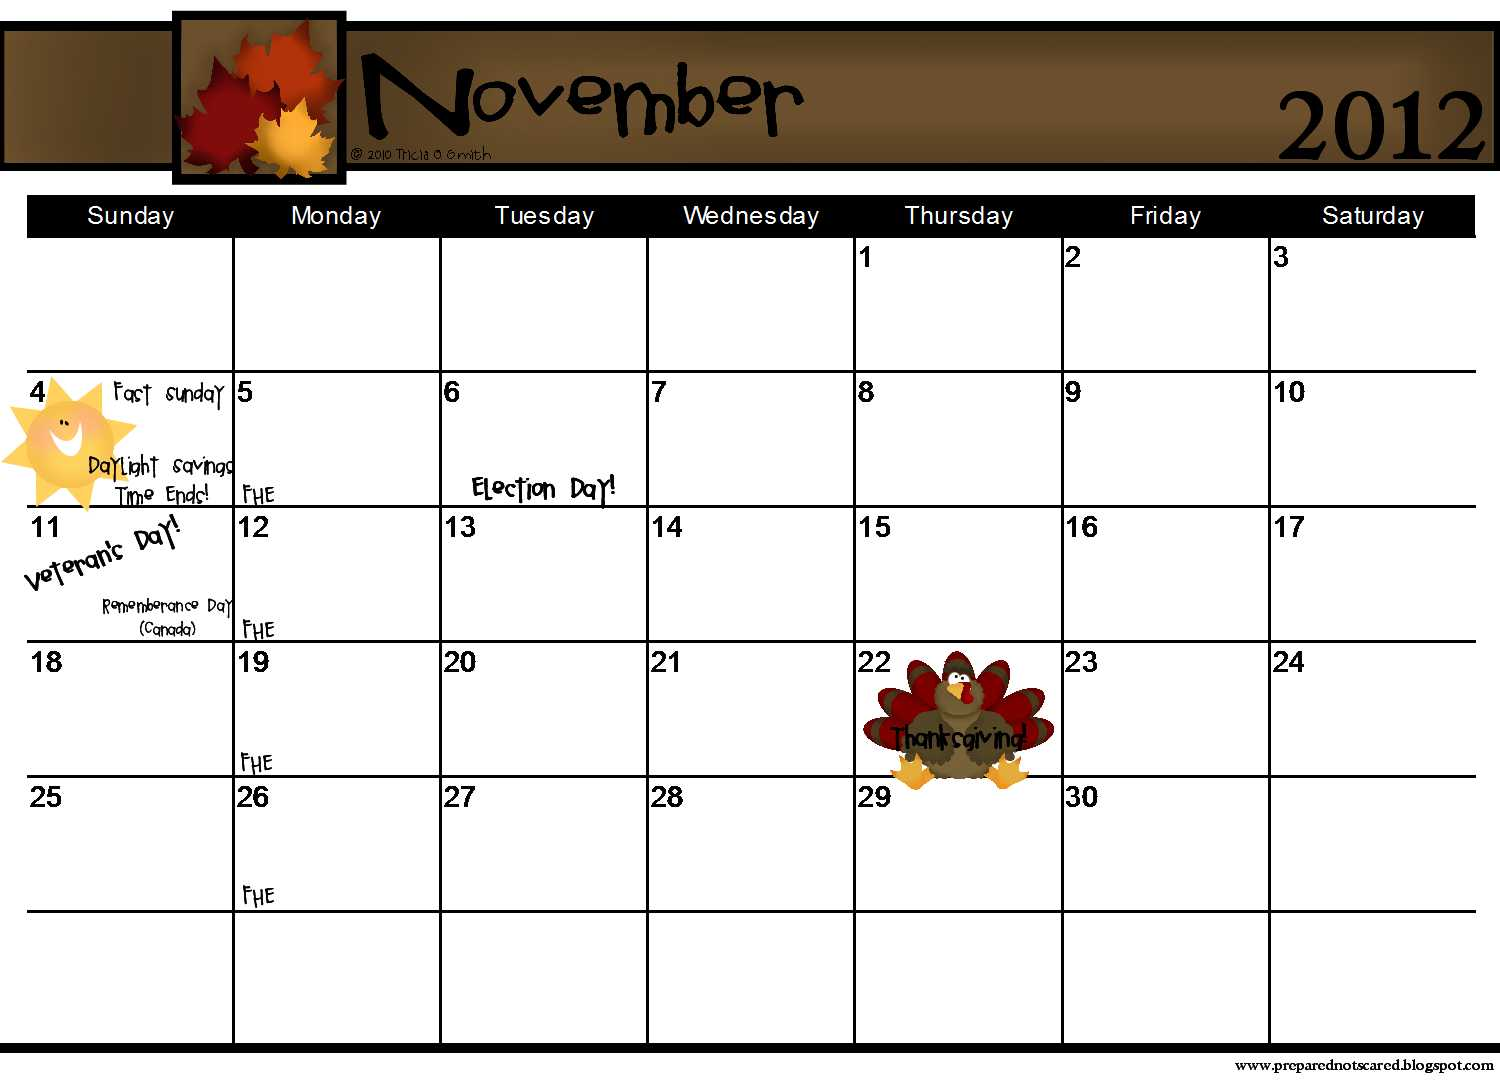 November 2012: Prepared NOT Scared!: The 2012 Calendars Are Here